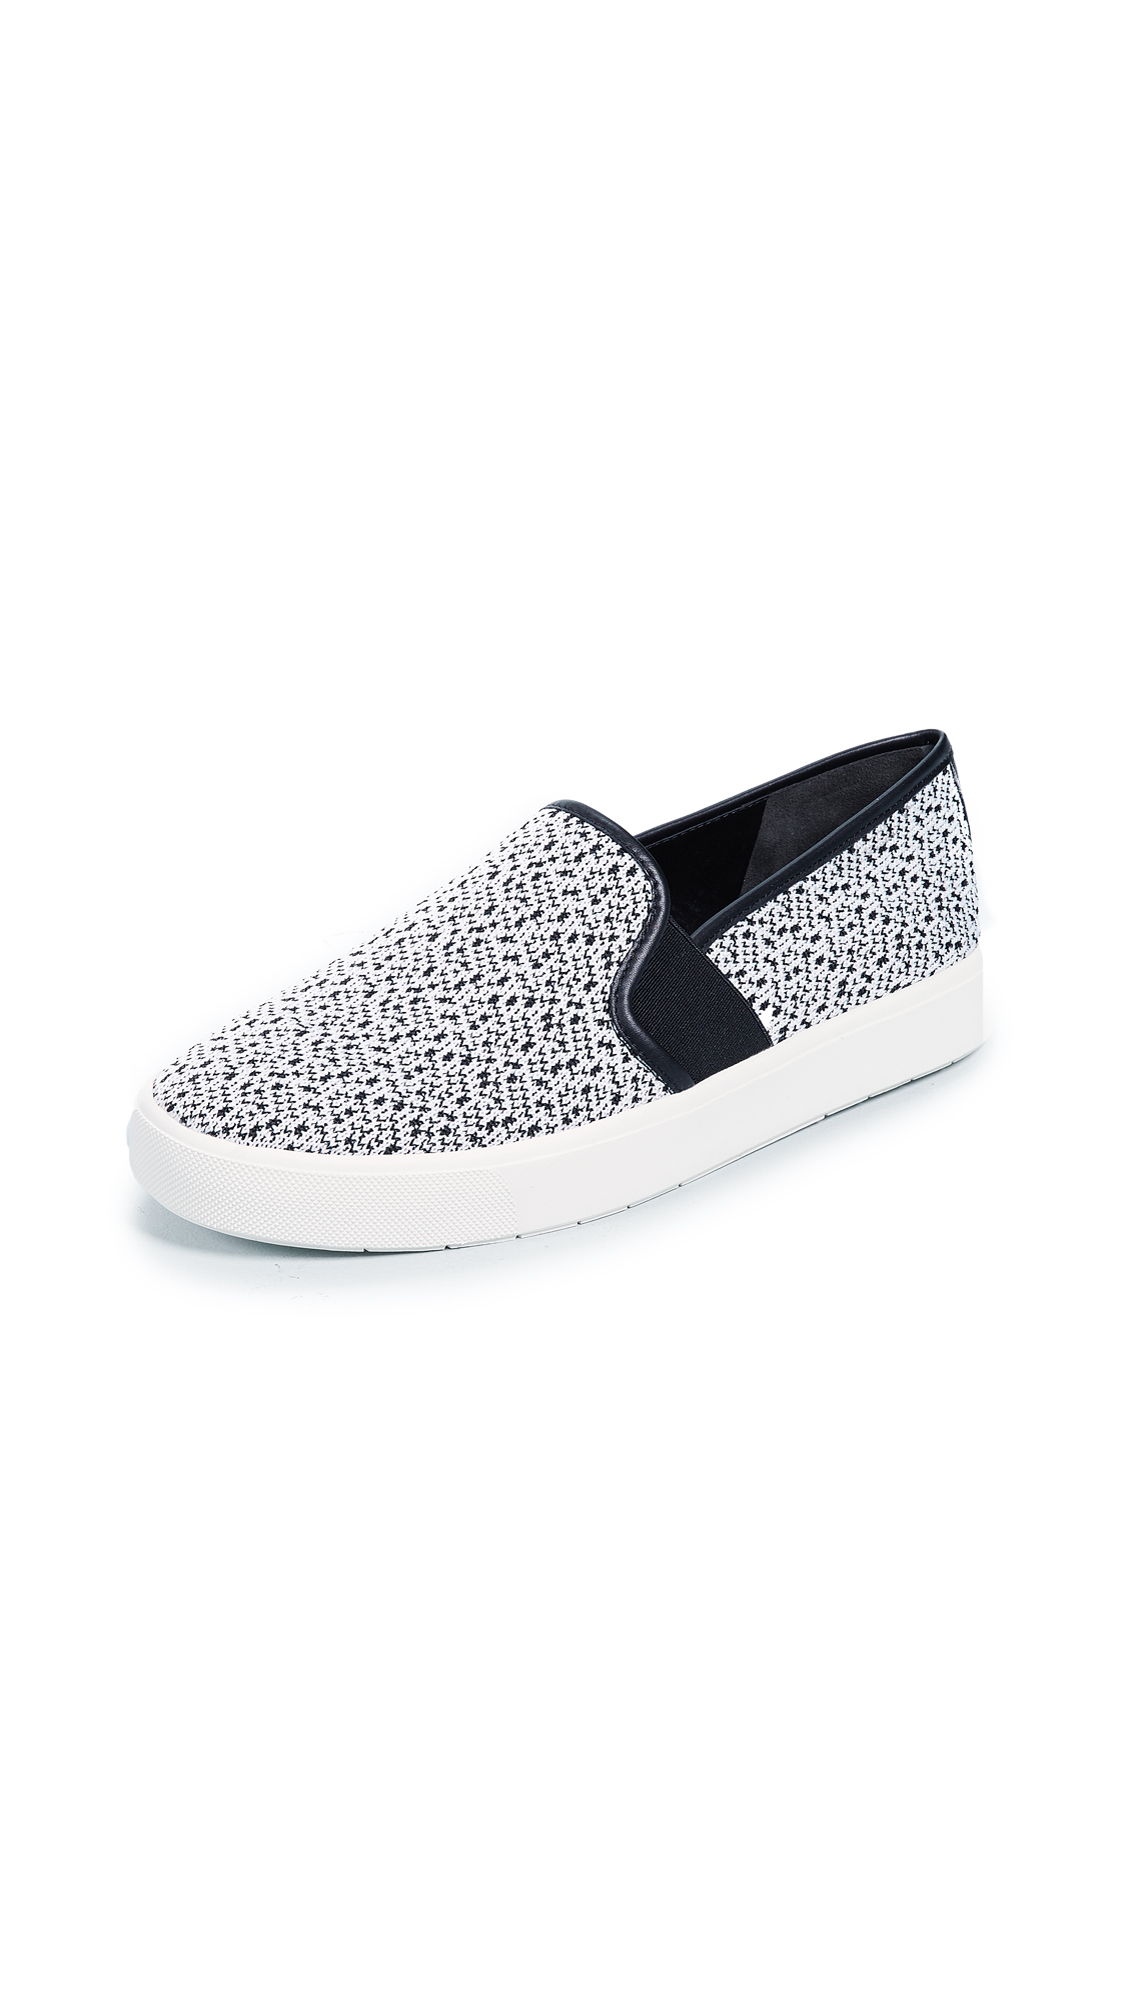 Vince Blair Slip On Sneakers - White/Black